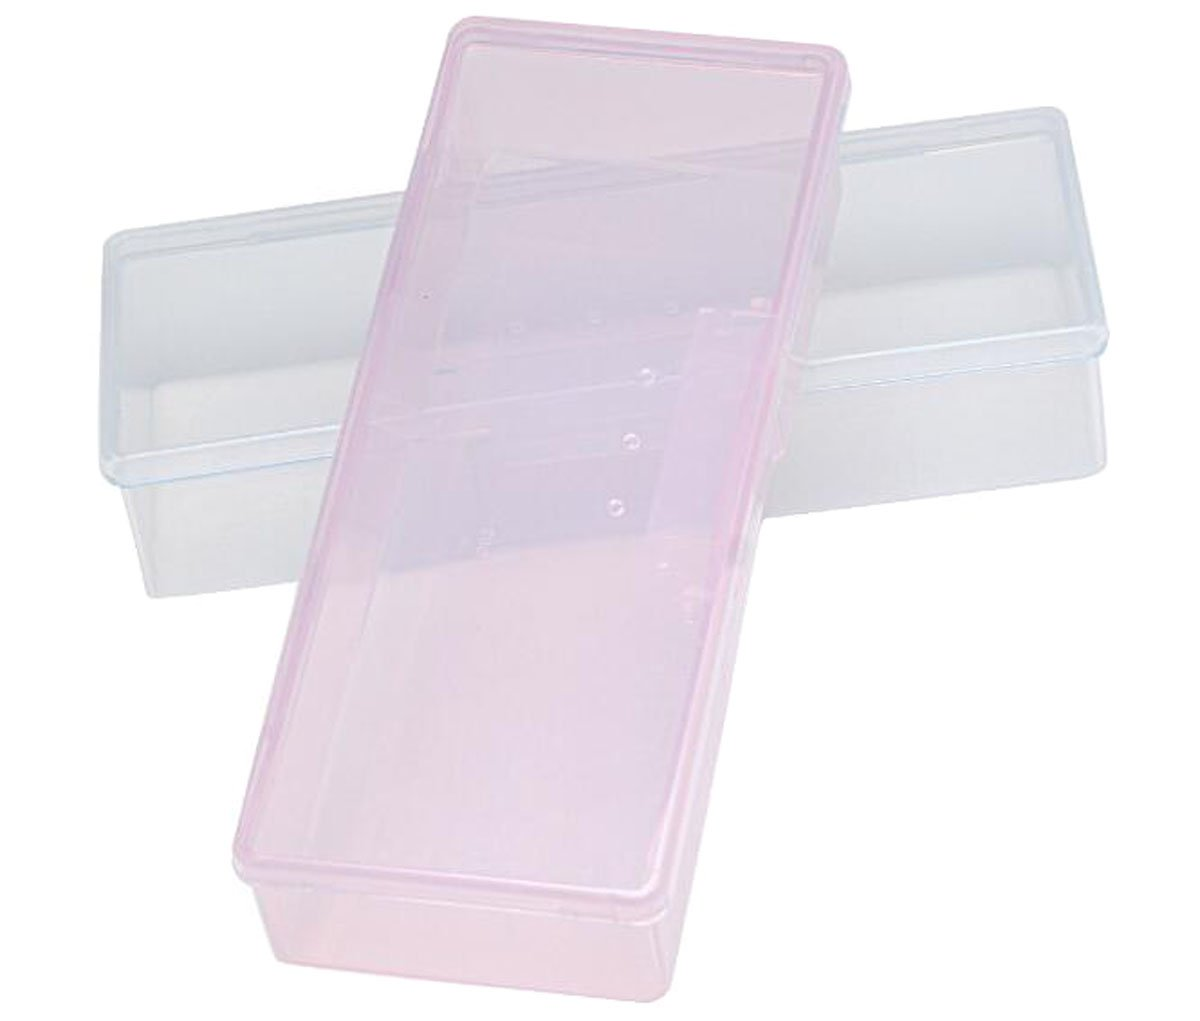 2 Pcs Empty Multifunctional Rectangular Storage Box - Nail Jewelry Storage Box Polished Manicure Toolbox